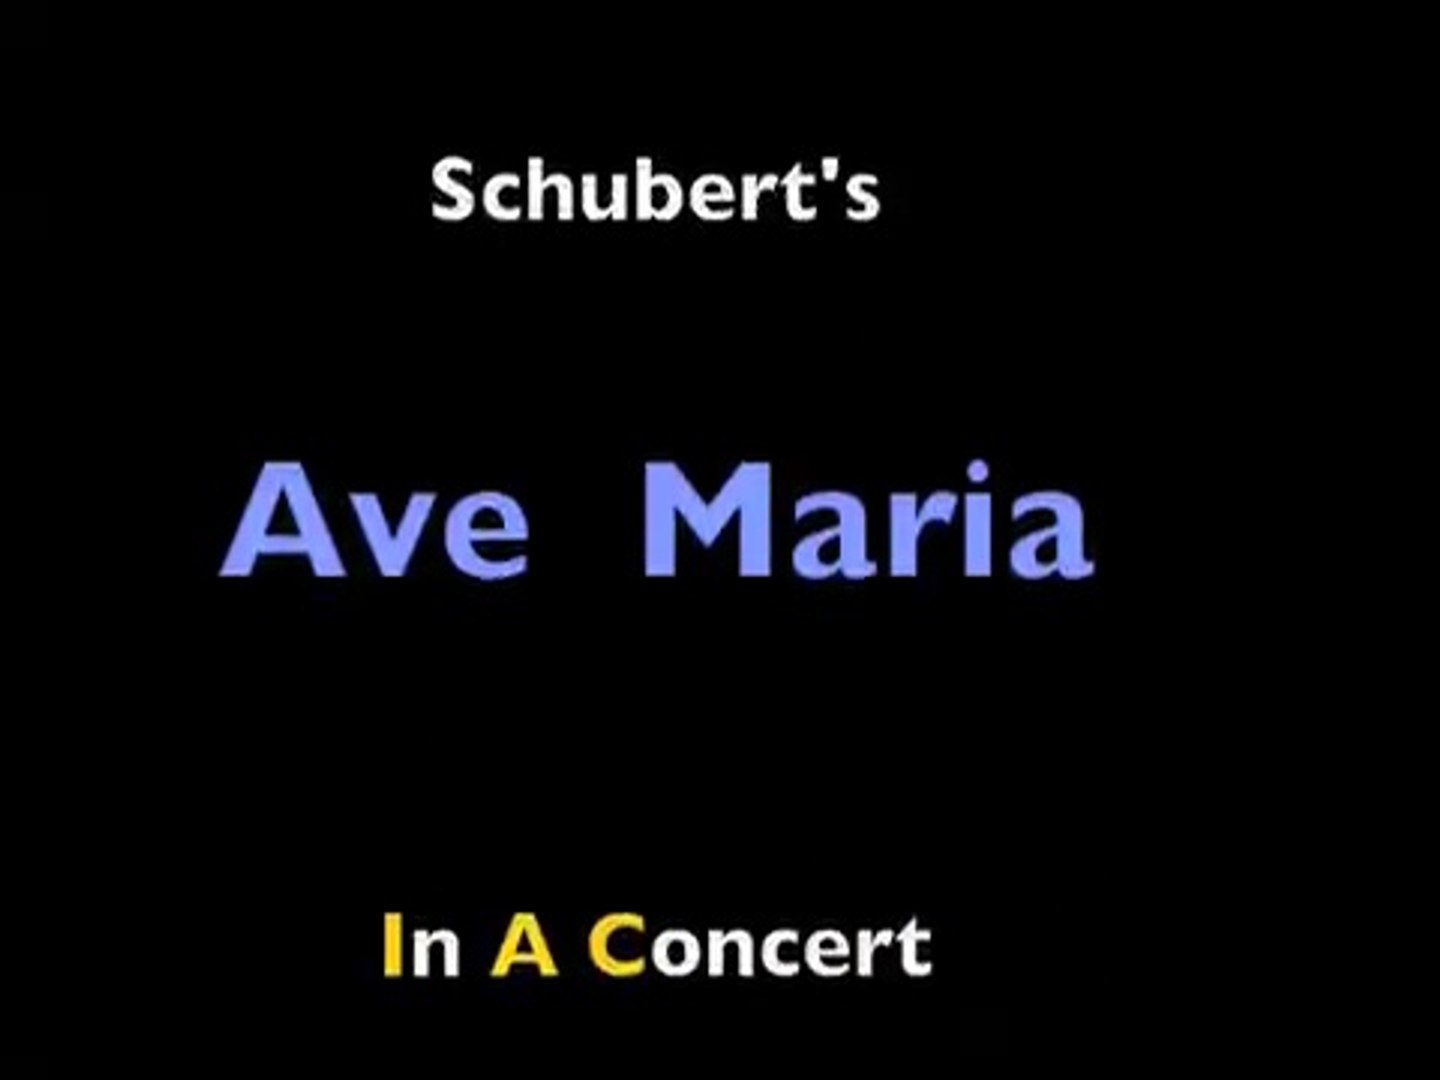 Barney Weihnachtslieder Text.Schubert S Most Famous Ave Maria